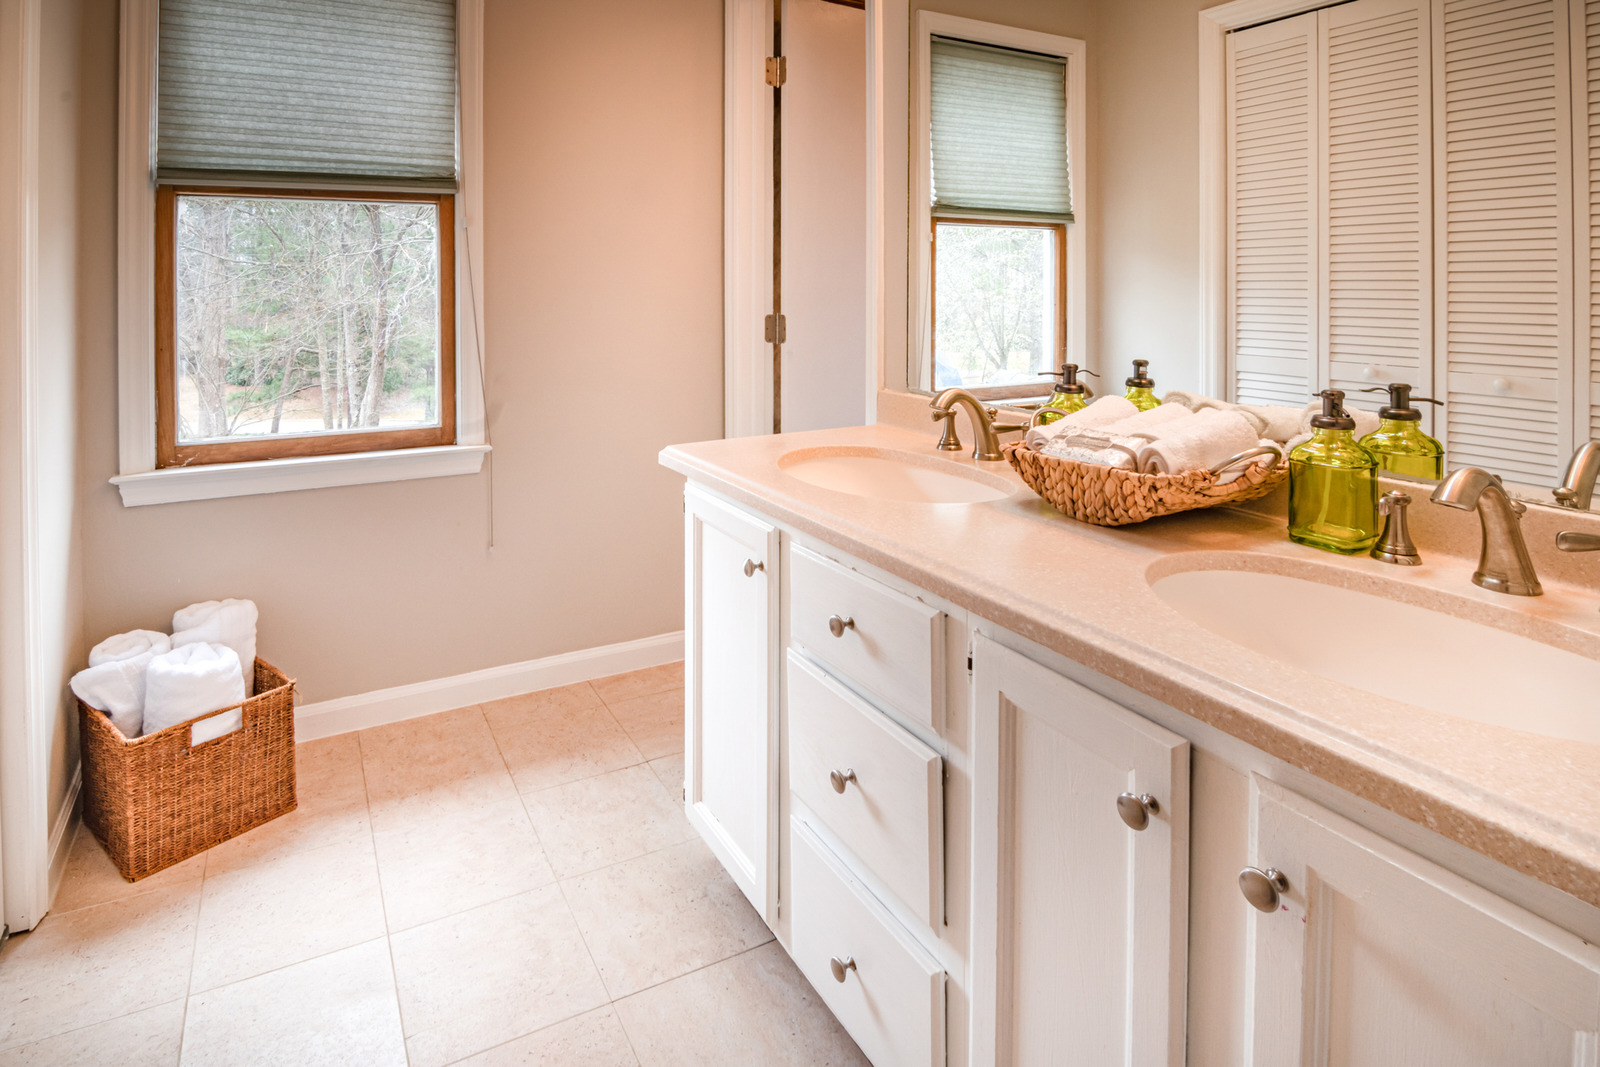 How to Prevent Cabinets from Chipping